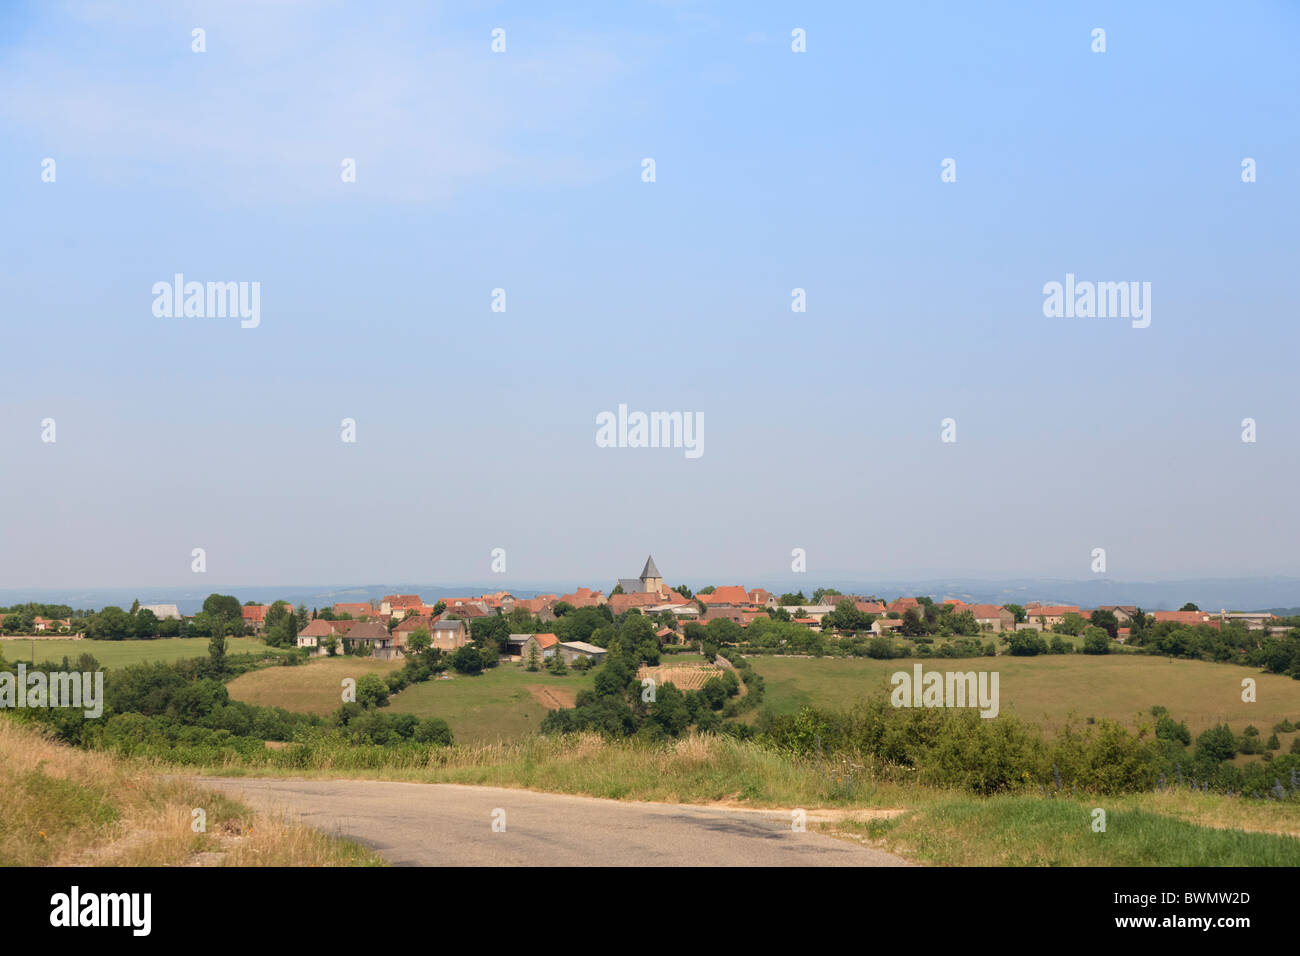 The small village of Reilhaguet in the Lot region of France Stock Photo